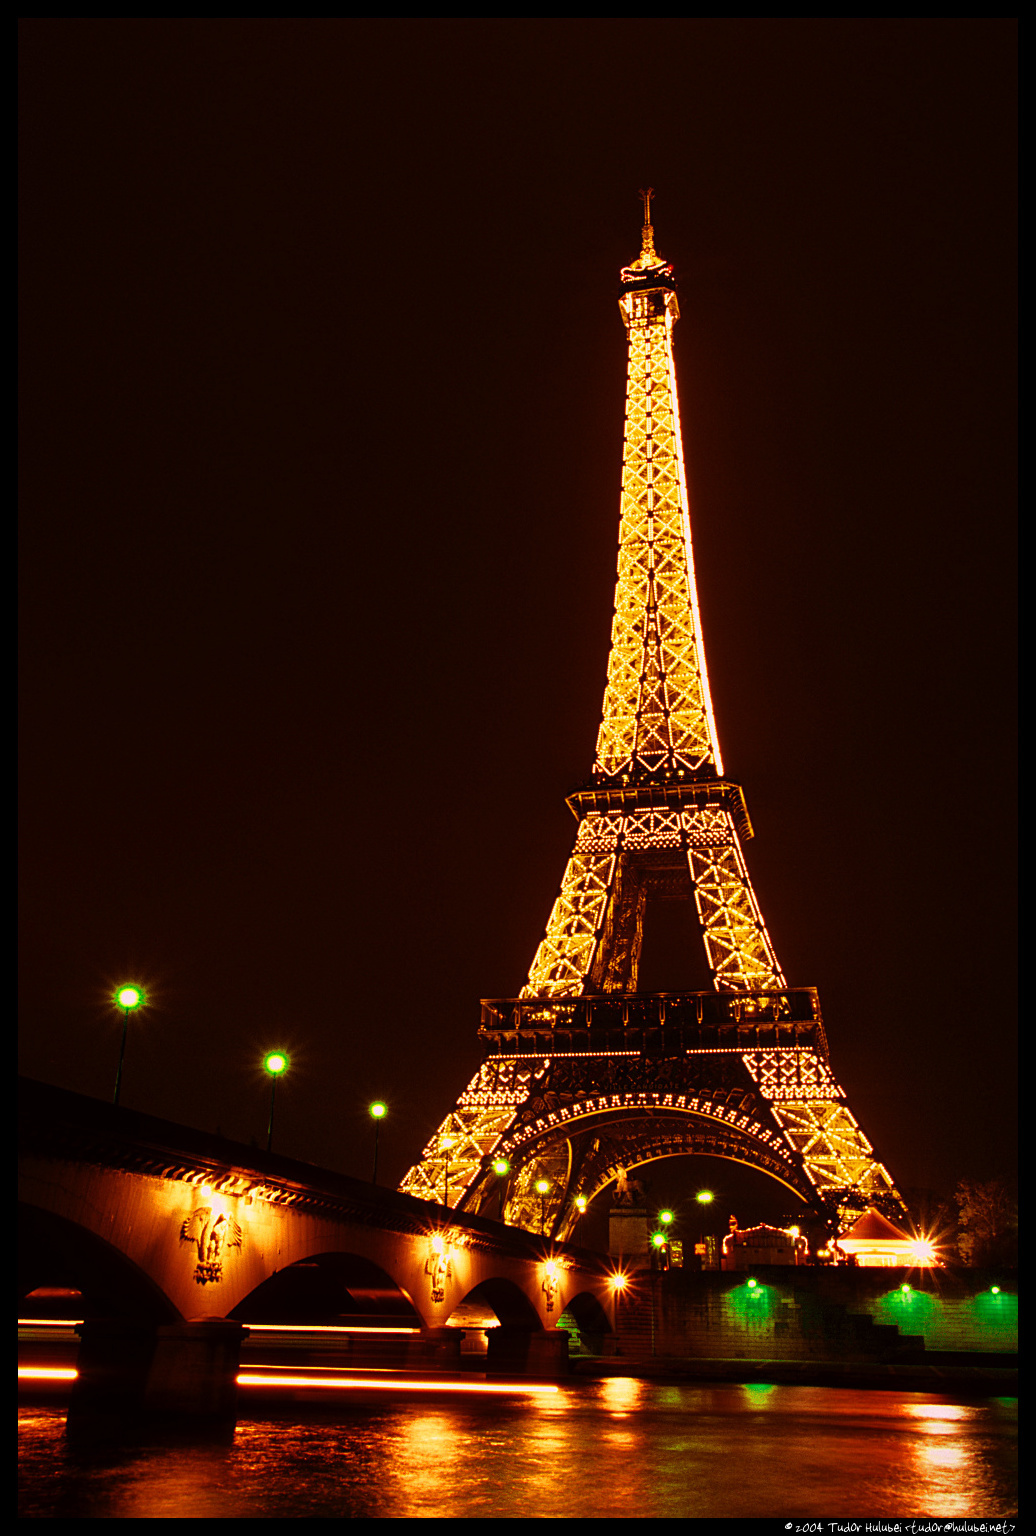 Night view of the eiffel tower (tour eiffel), paris, france